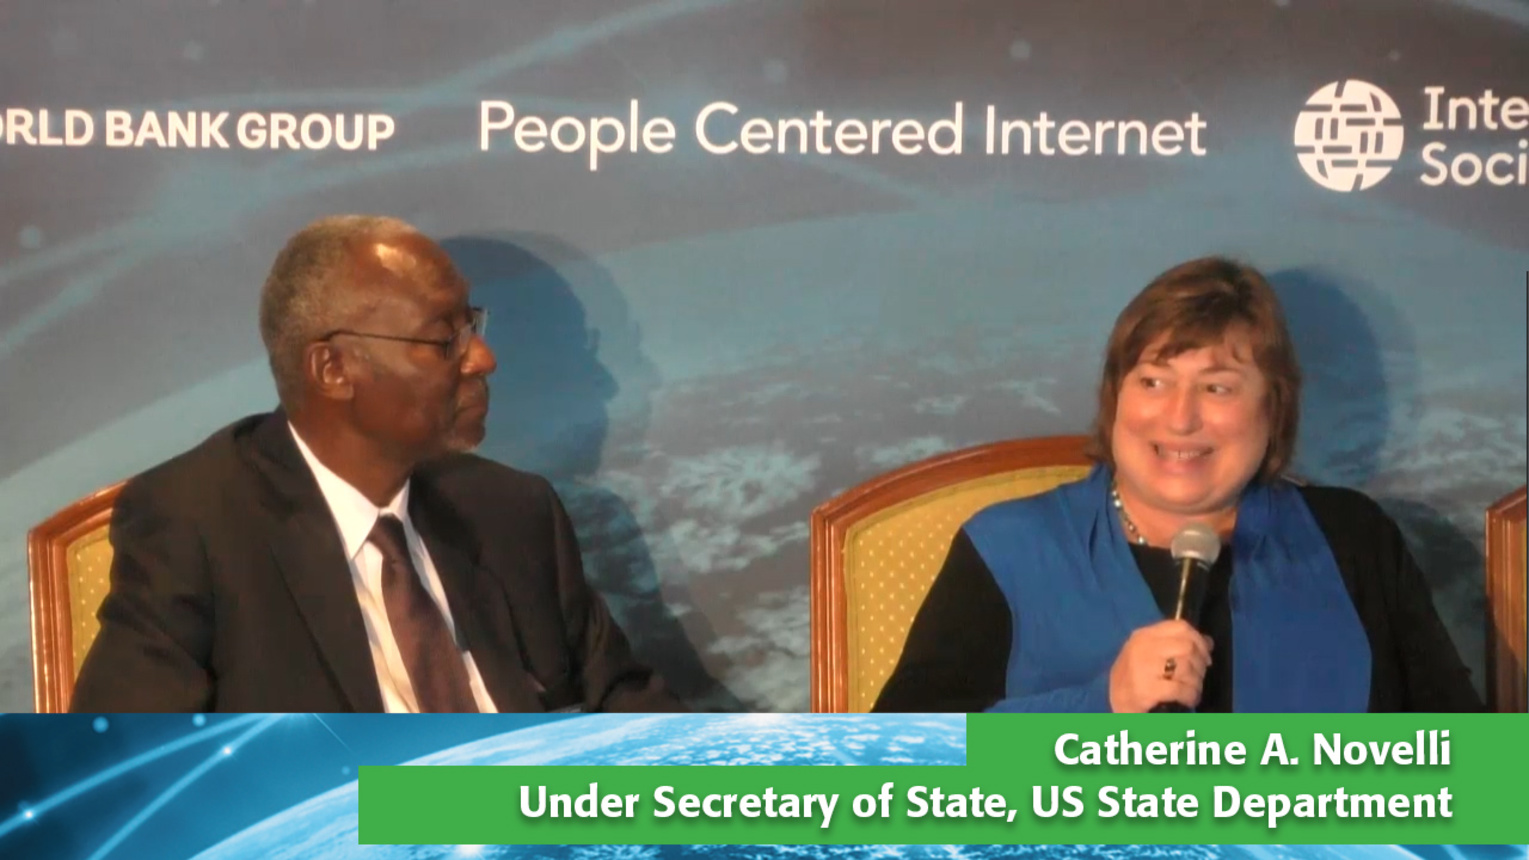 Catherine A. Novelli - Internet Inclusion: Global Connect Stakeholders Advancing Solutions, Washington DC, 2016